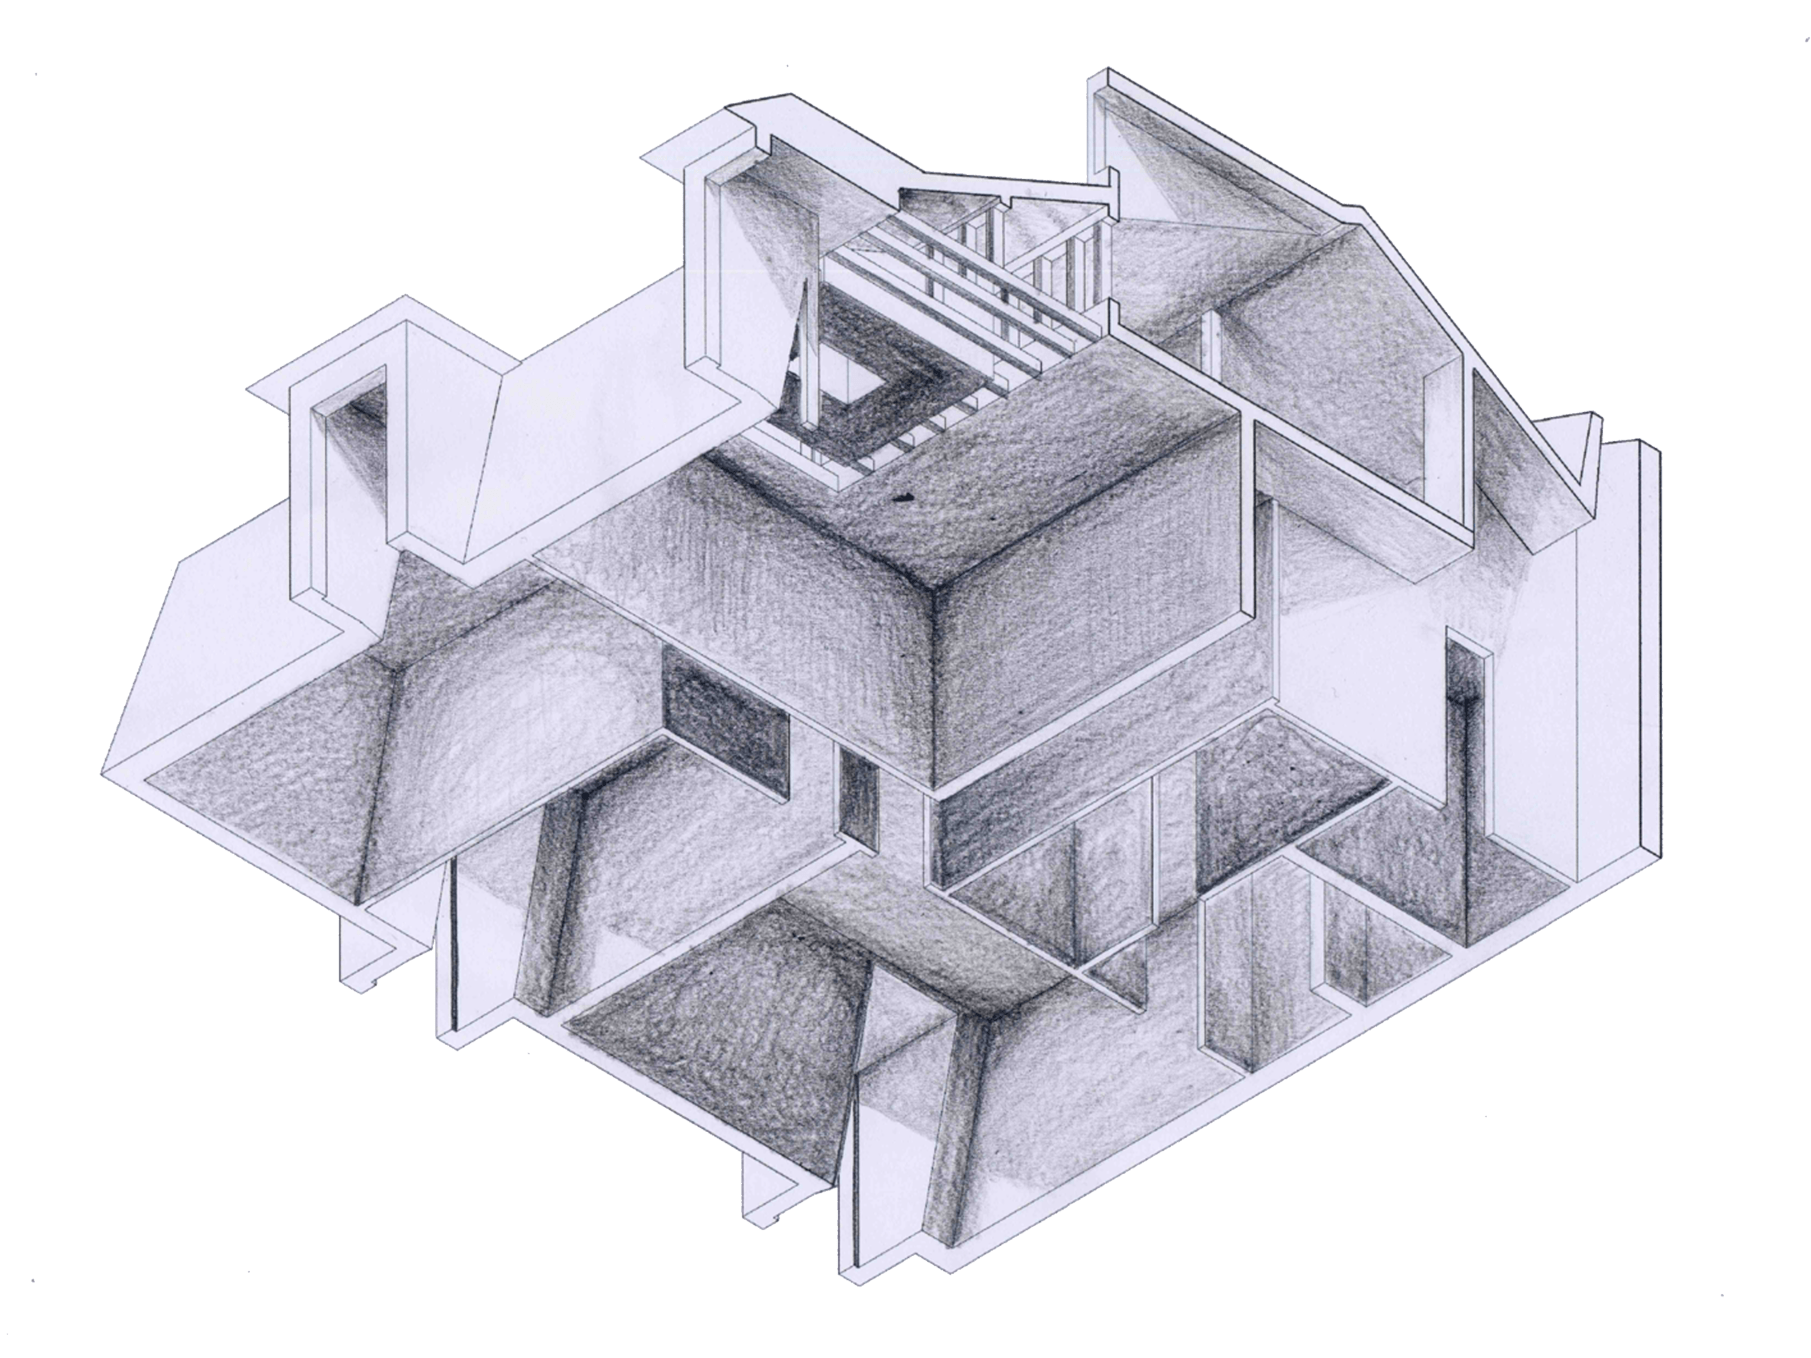 11 Cebolas drawing of structure edited